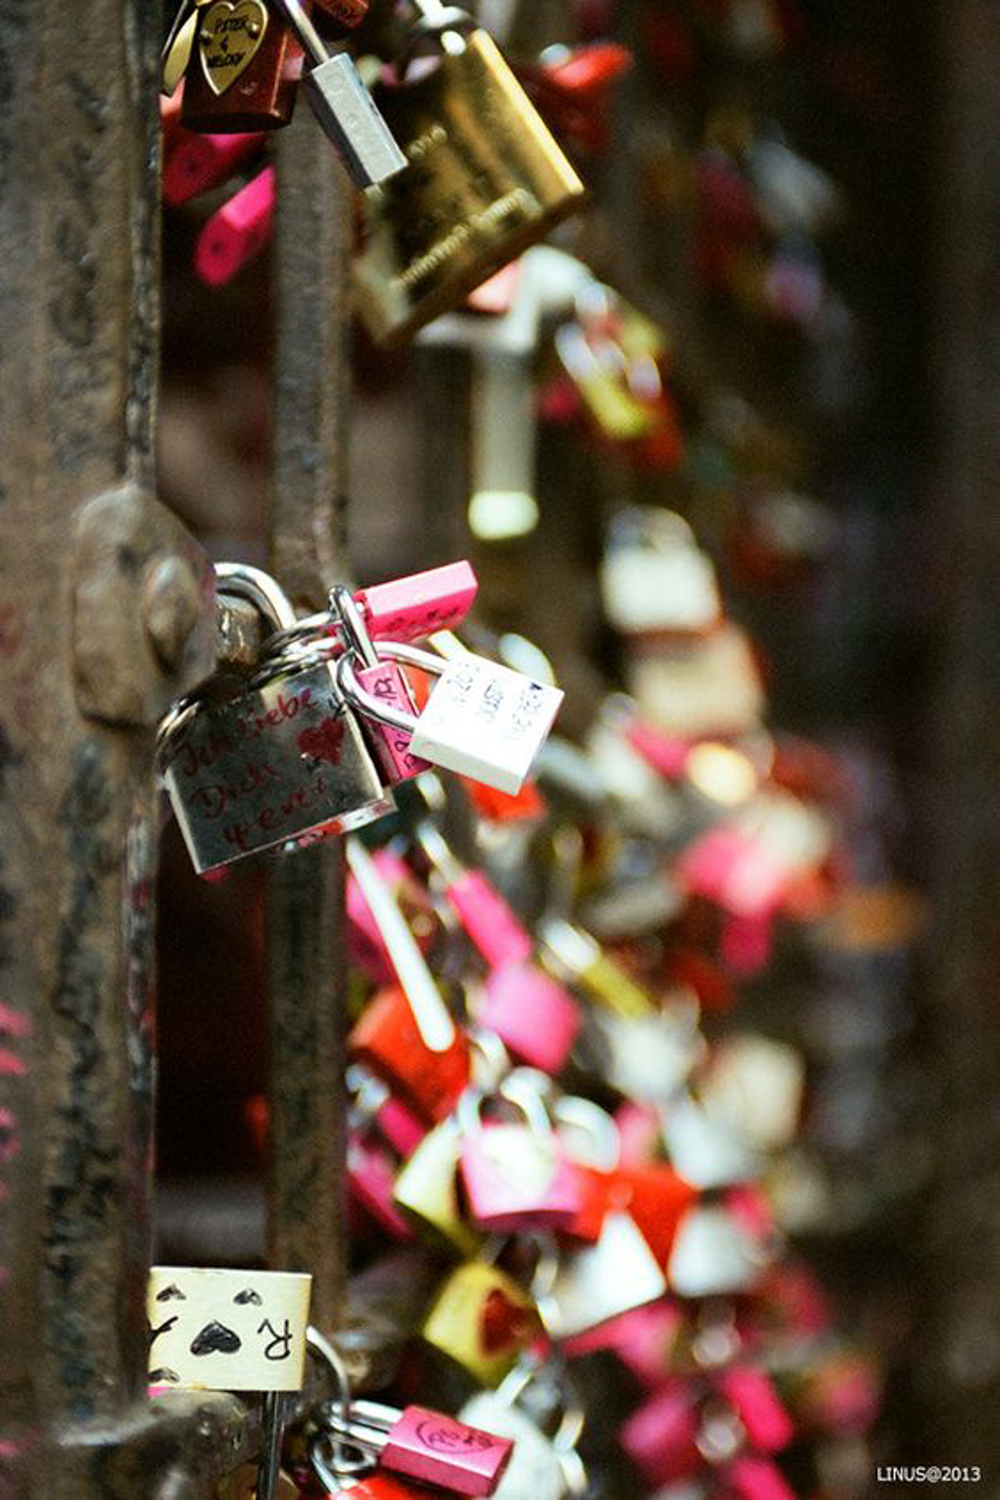 Love Locks in Verona